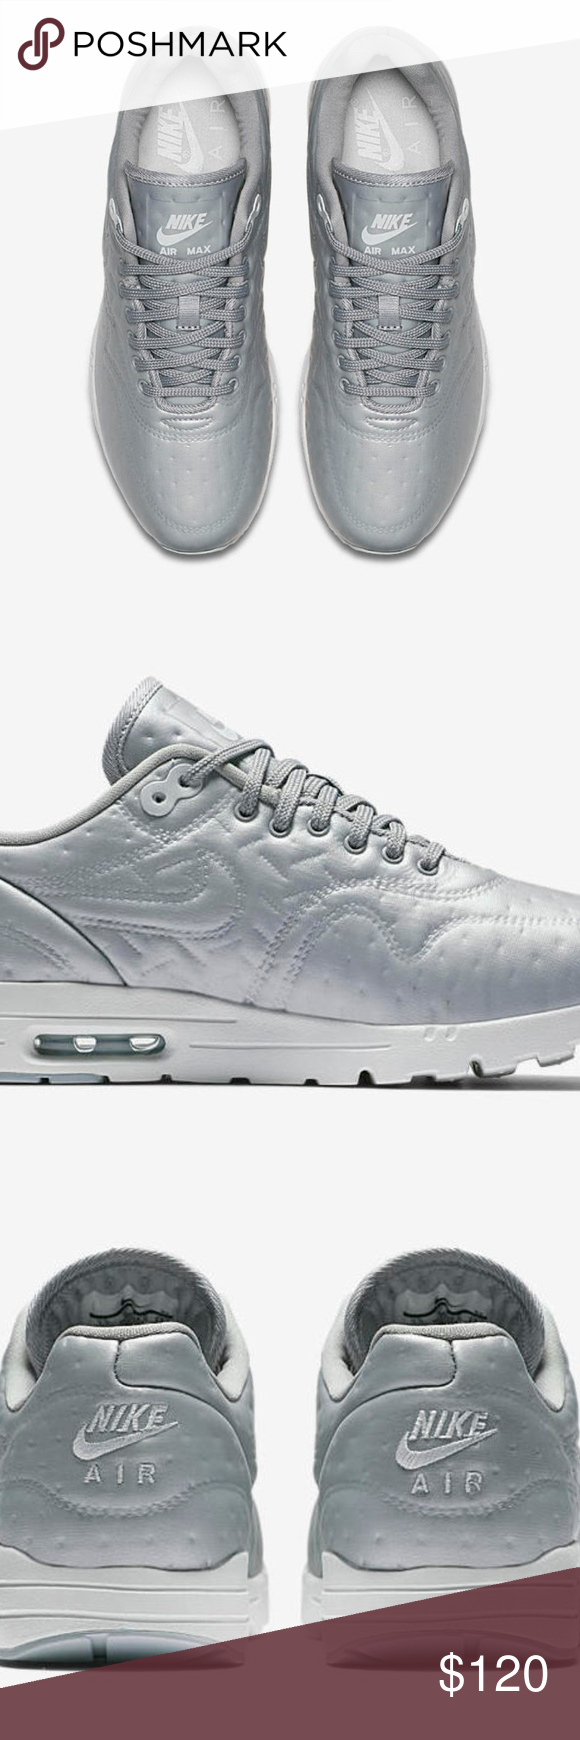 96d802cafc Nike Air Max 1 Ultra Premium Jacquard Women's Shoe Deadstock Silver Metallic  Sz 8.5 Style #